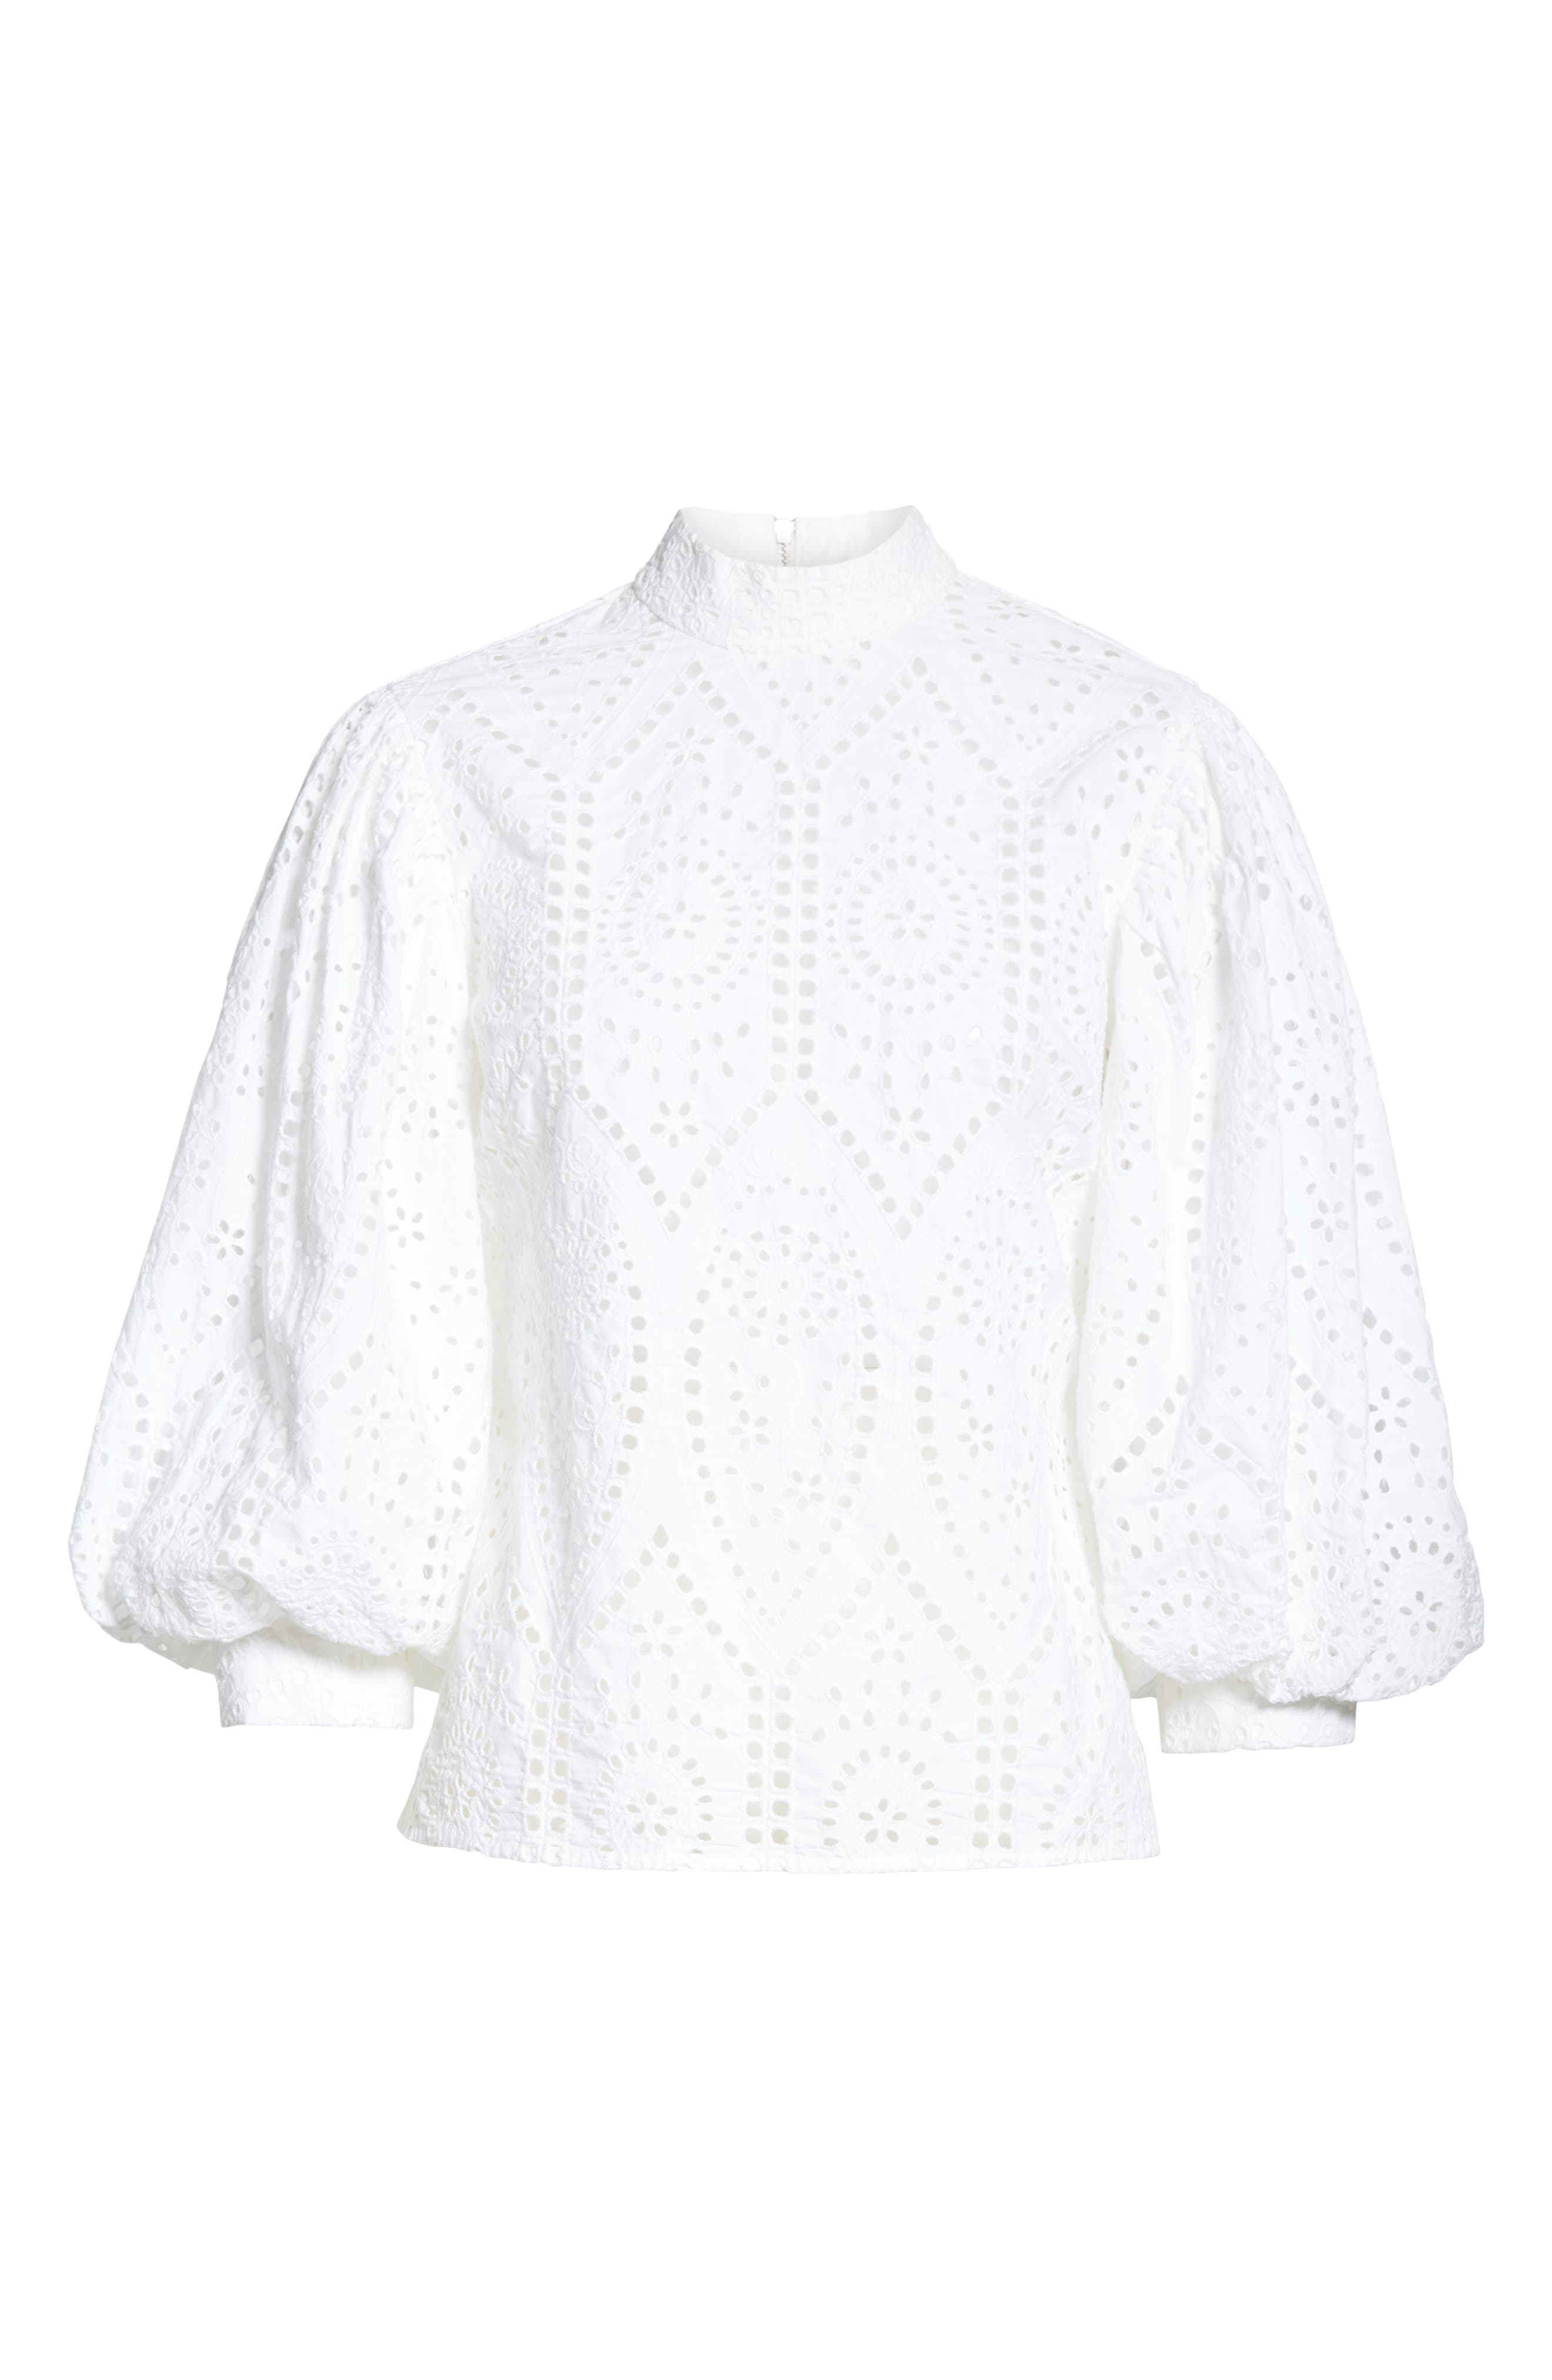 Broderie Anglaise Shirt,                             Alternate thumbnail 6, color,                             BRIGHT WHITE 151